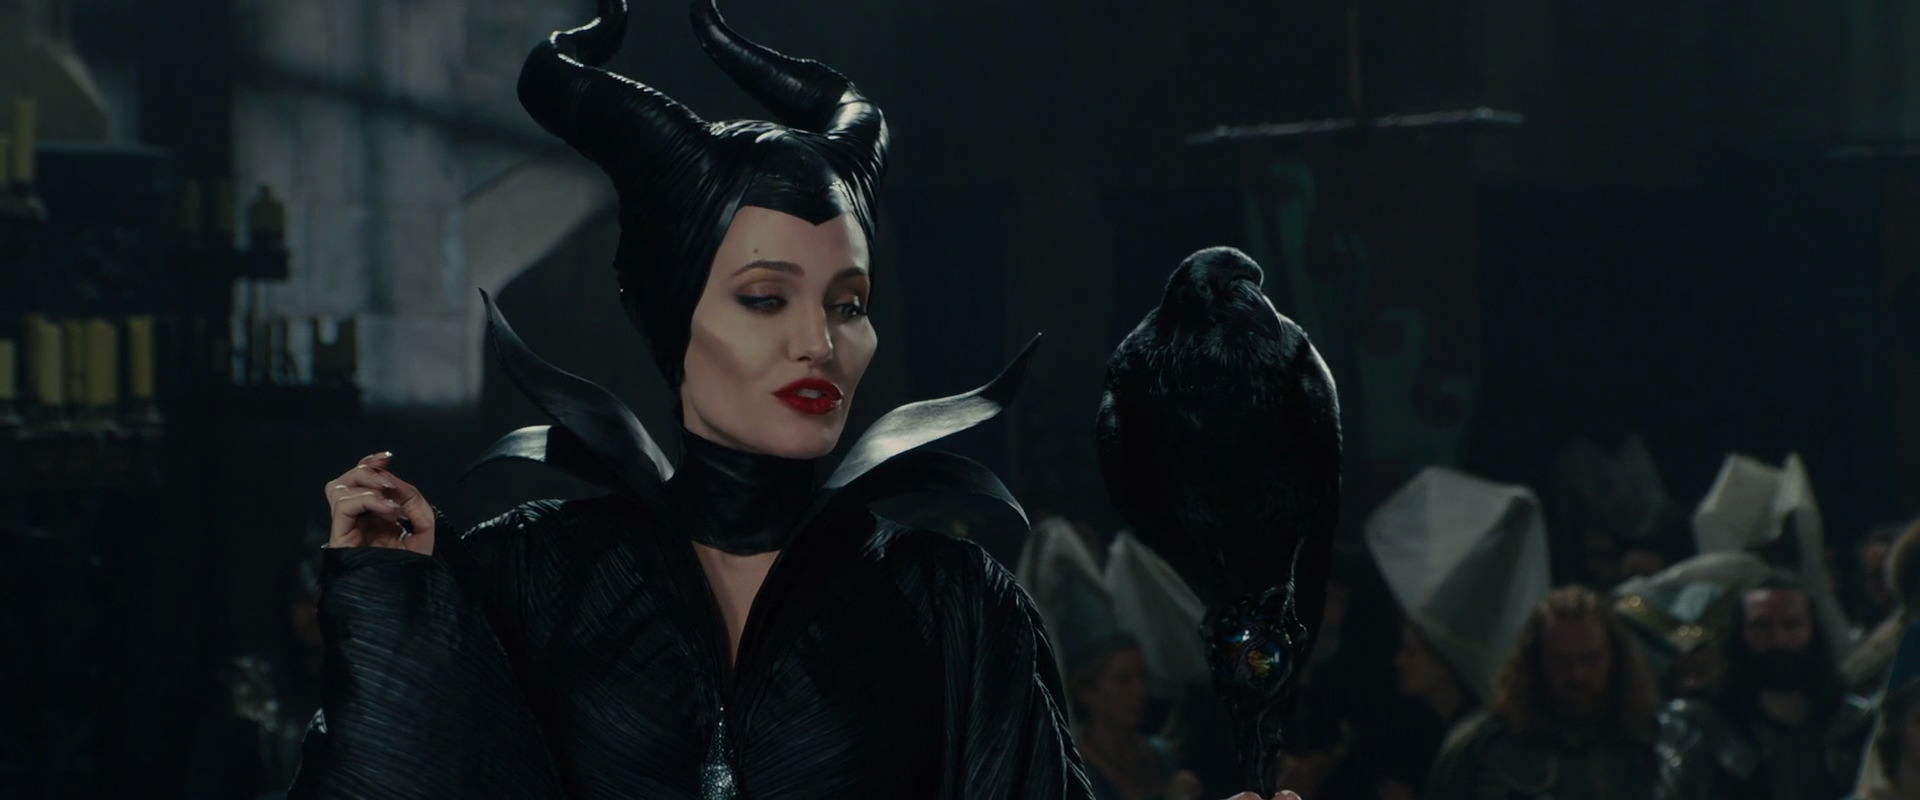 Maleficent Full Movie Download In Dual Audio Maleficent